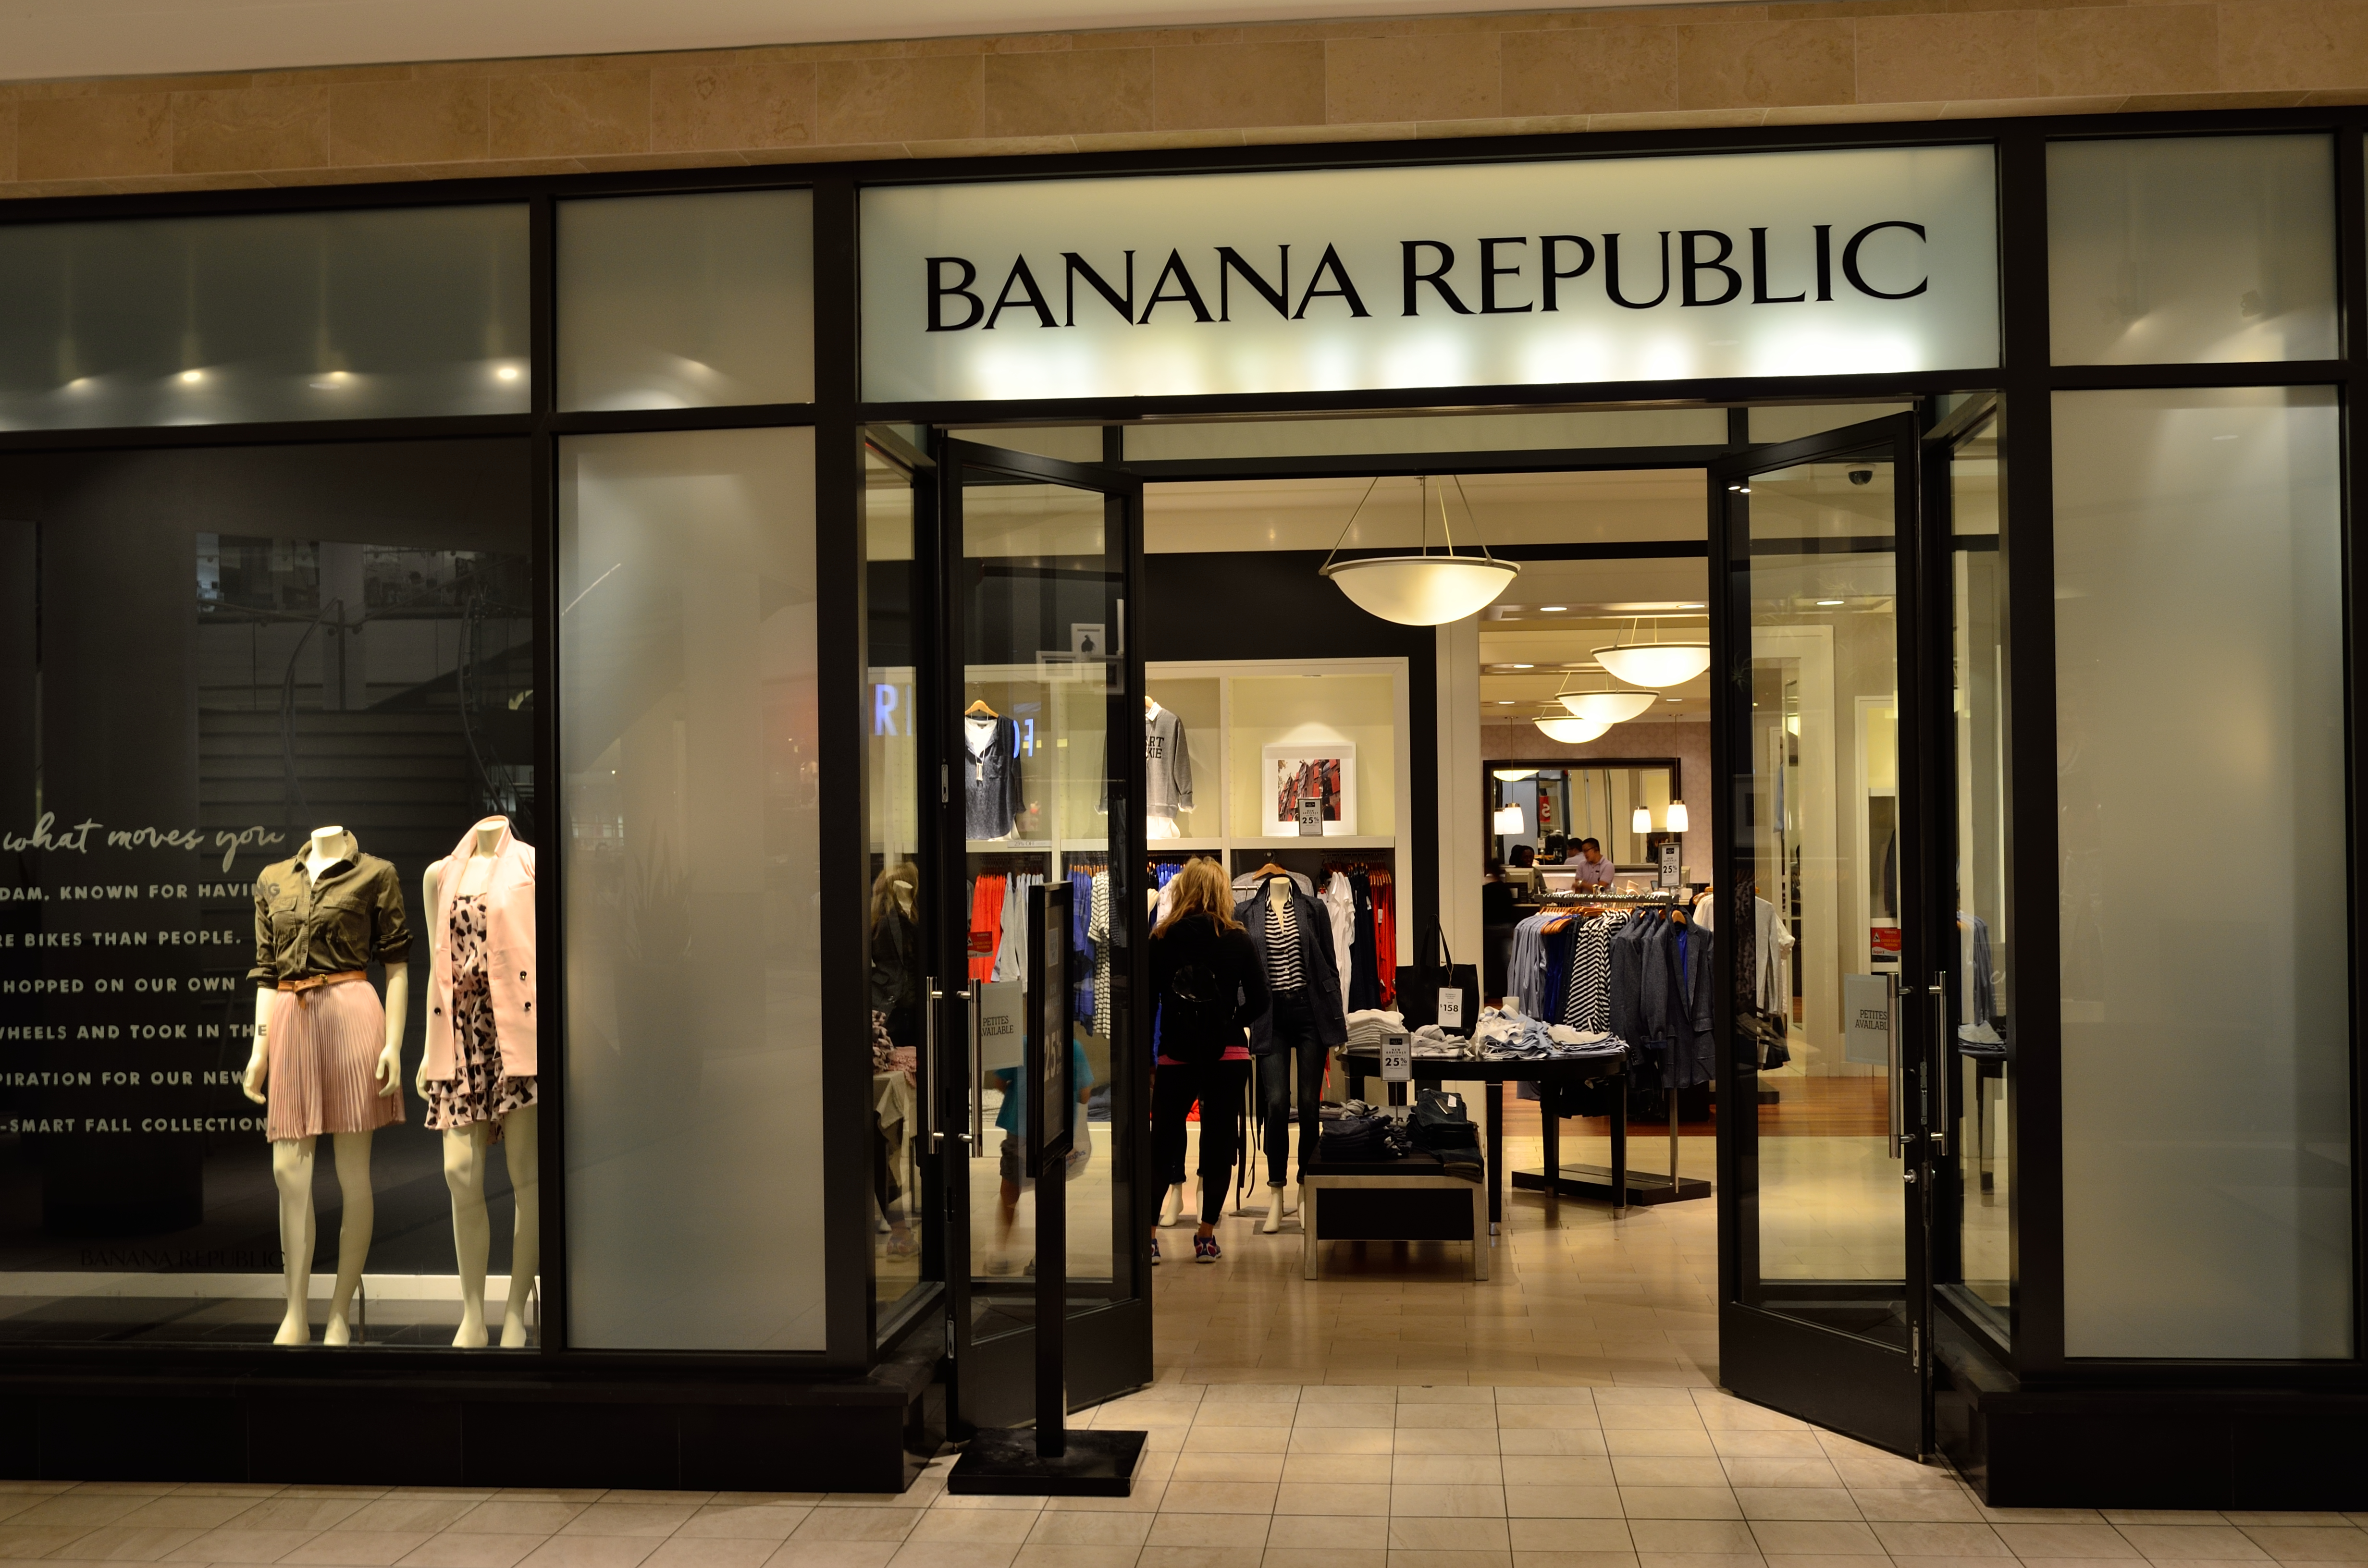 For a classic, refined yet trendy style, Banana Republic offers the finest in men's and women's clothing, shoes and accessories. Find casual denim, swimwear and .